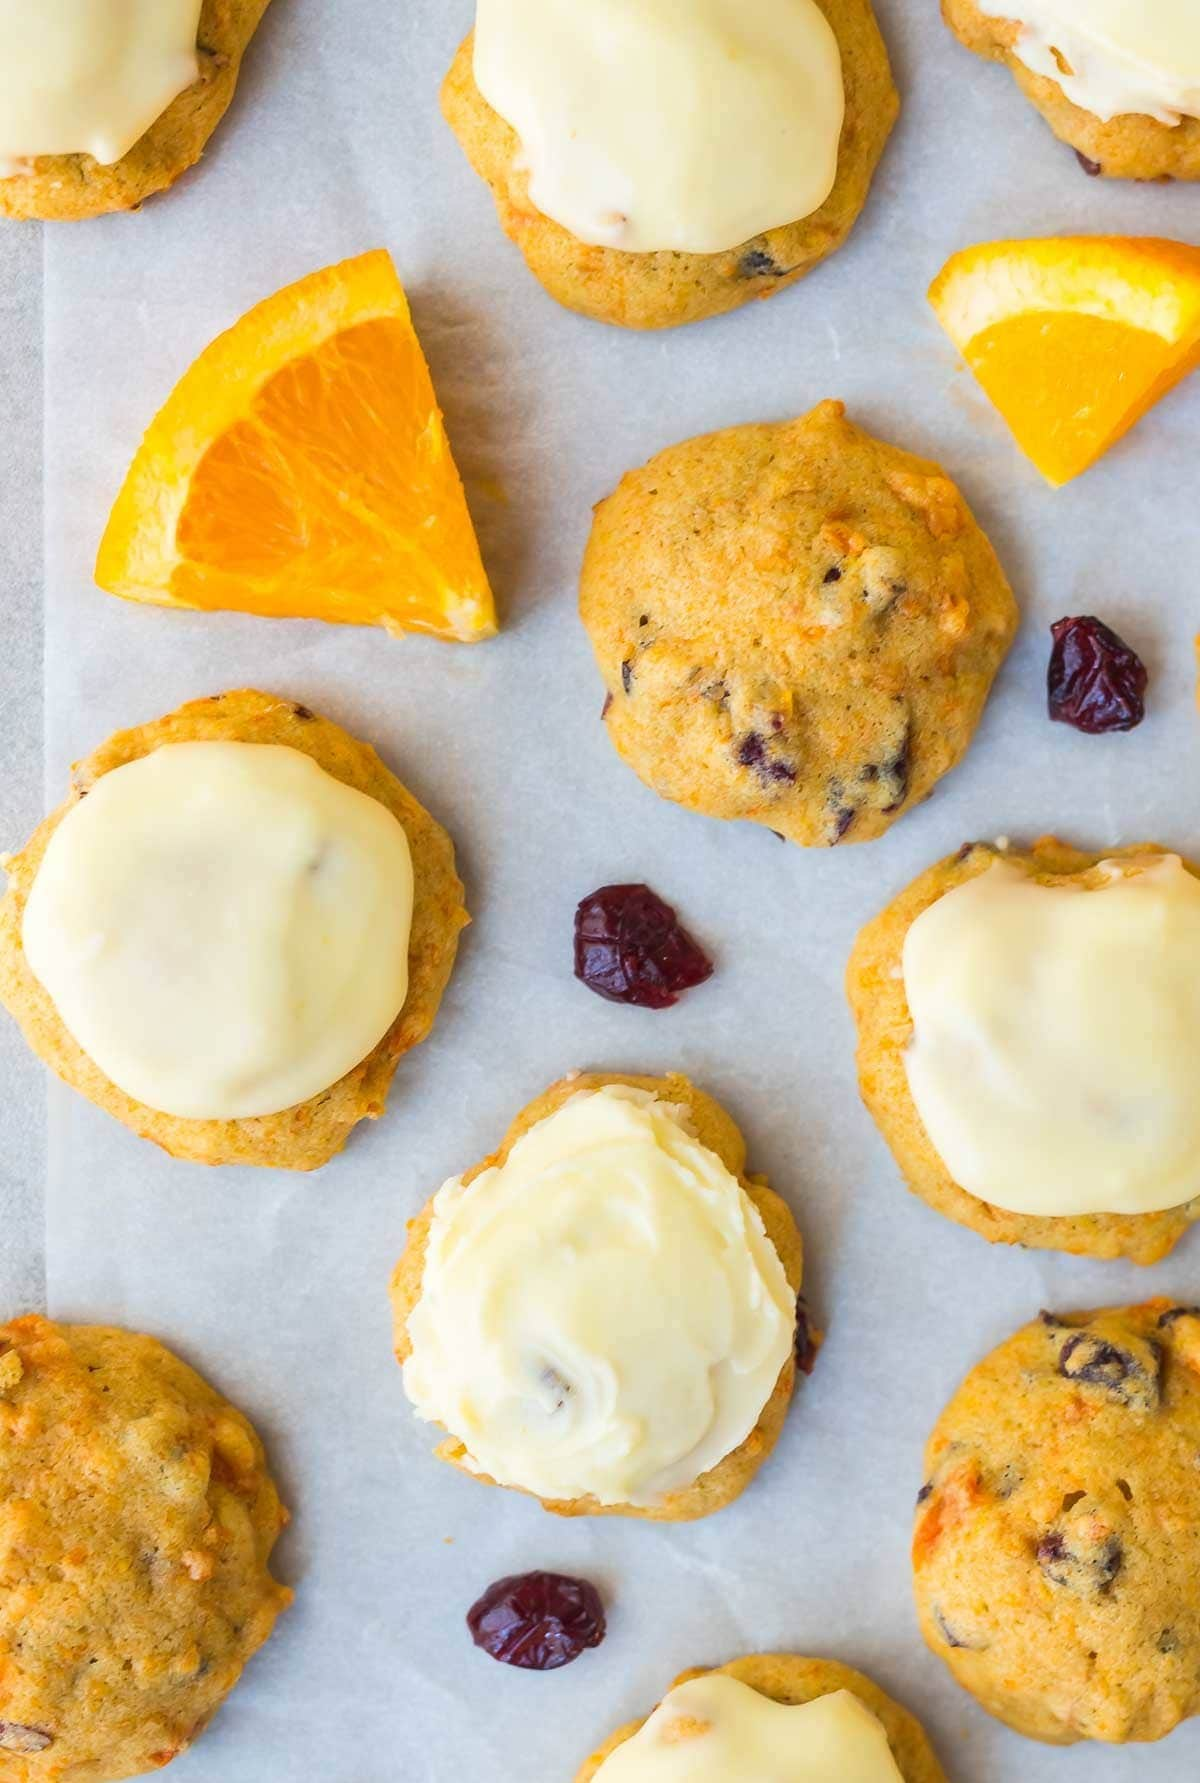 Melt In Your Mouth Orange Cookies With Cranberries And Orange Frosting